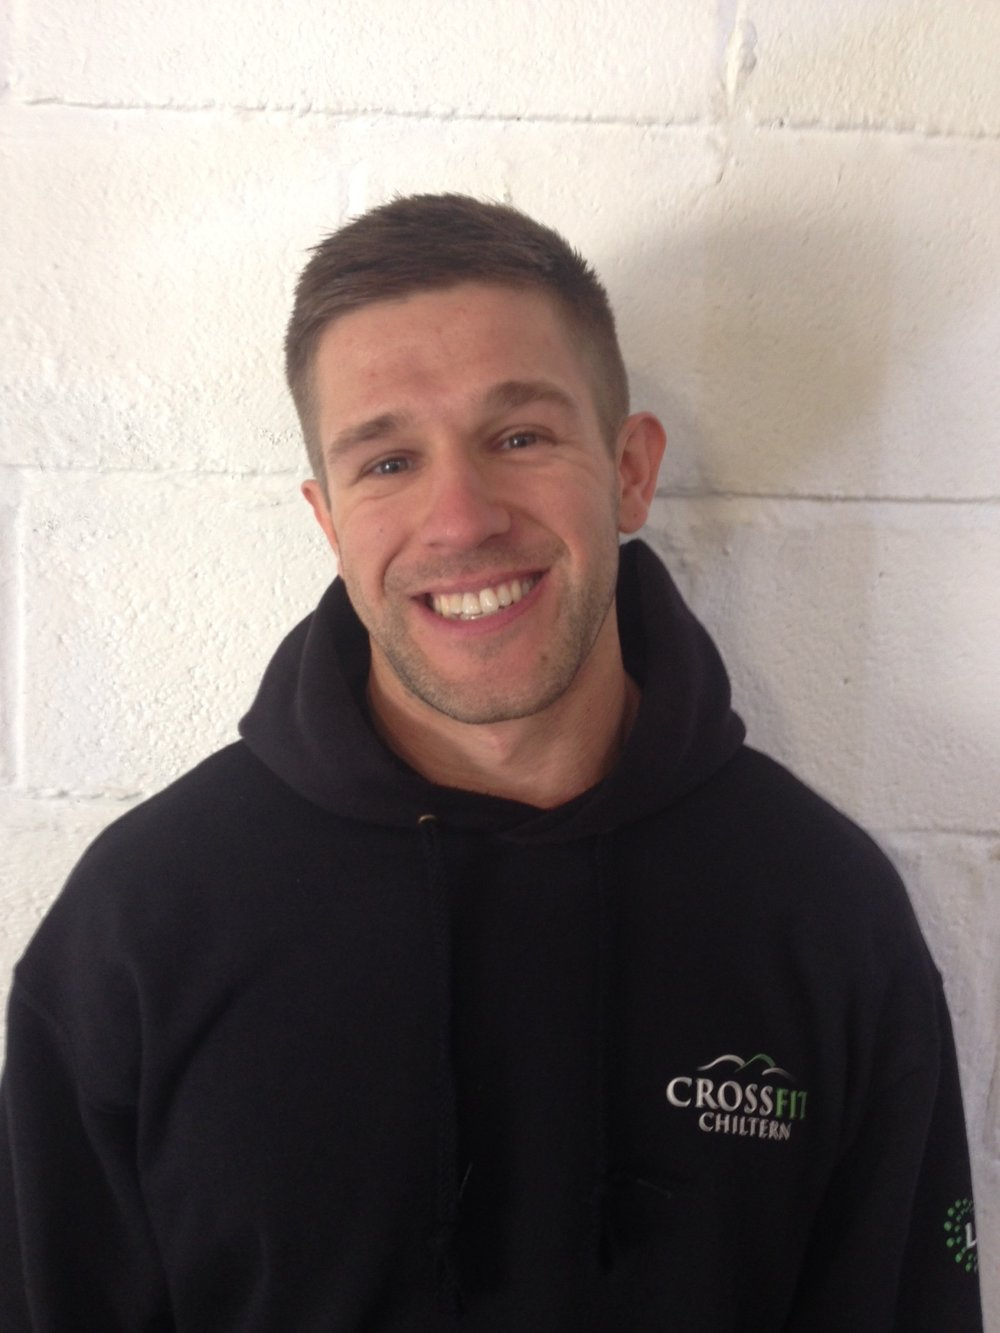 Roman Swiatly is CrossFit Chiltern's newest coach and personal trainer